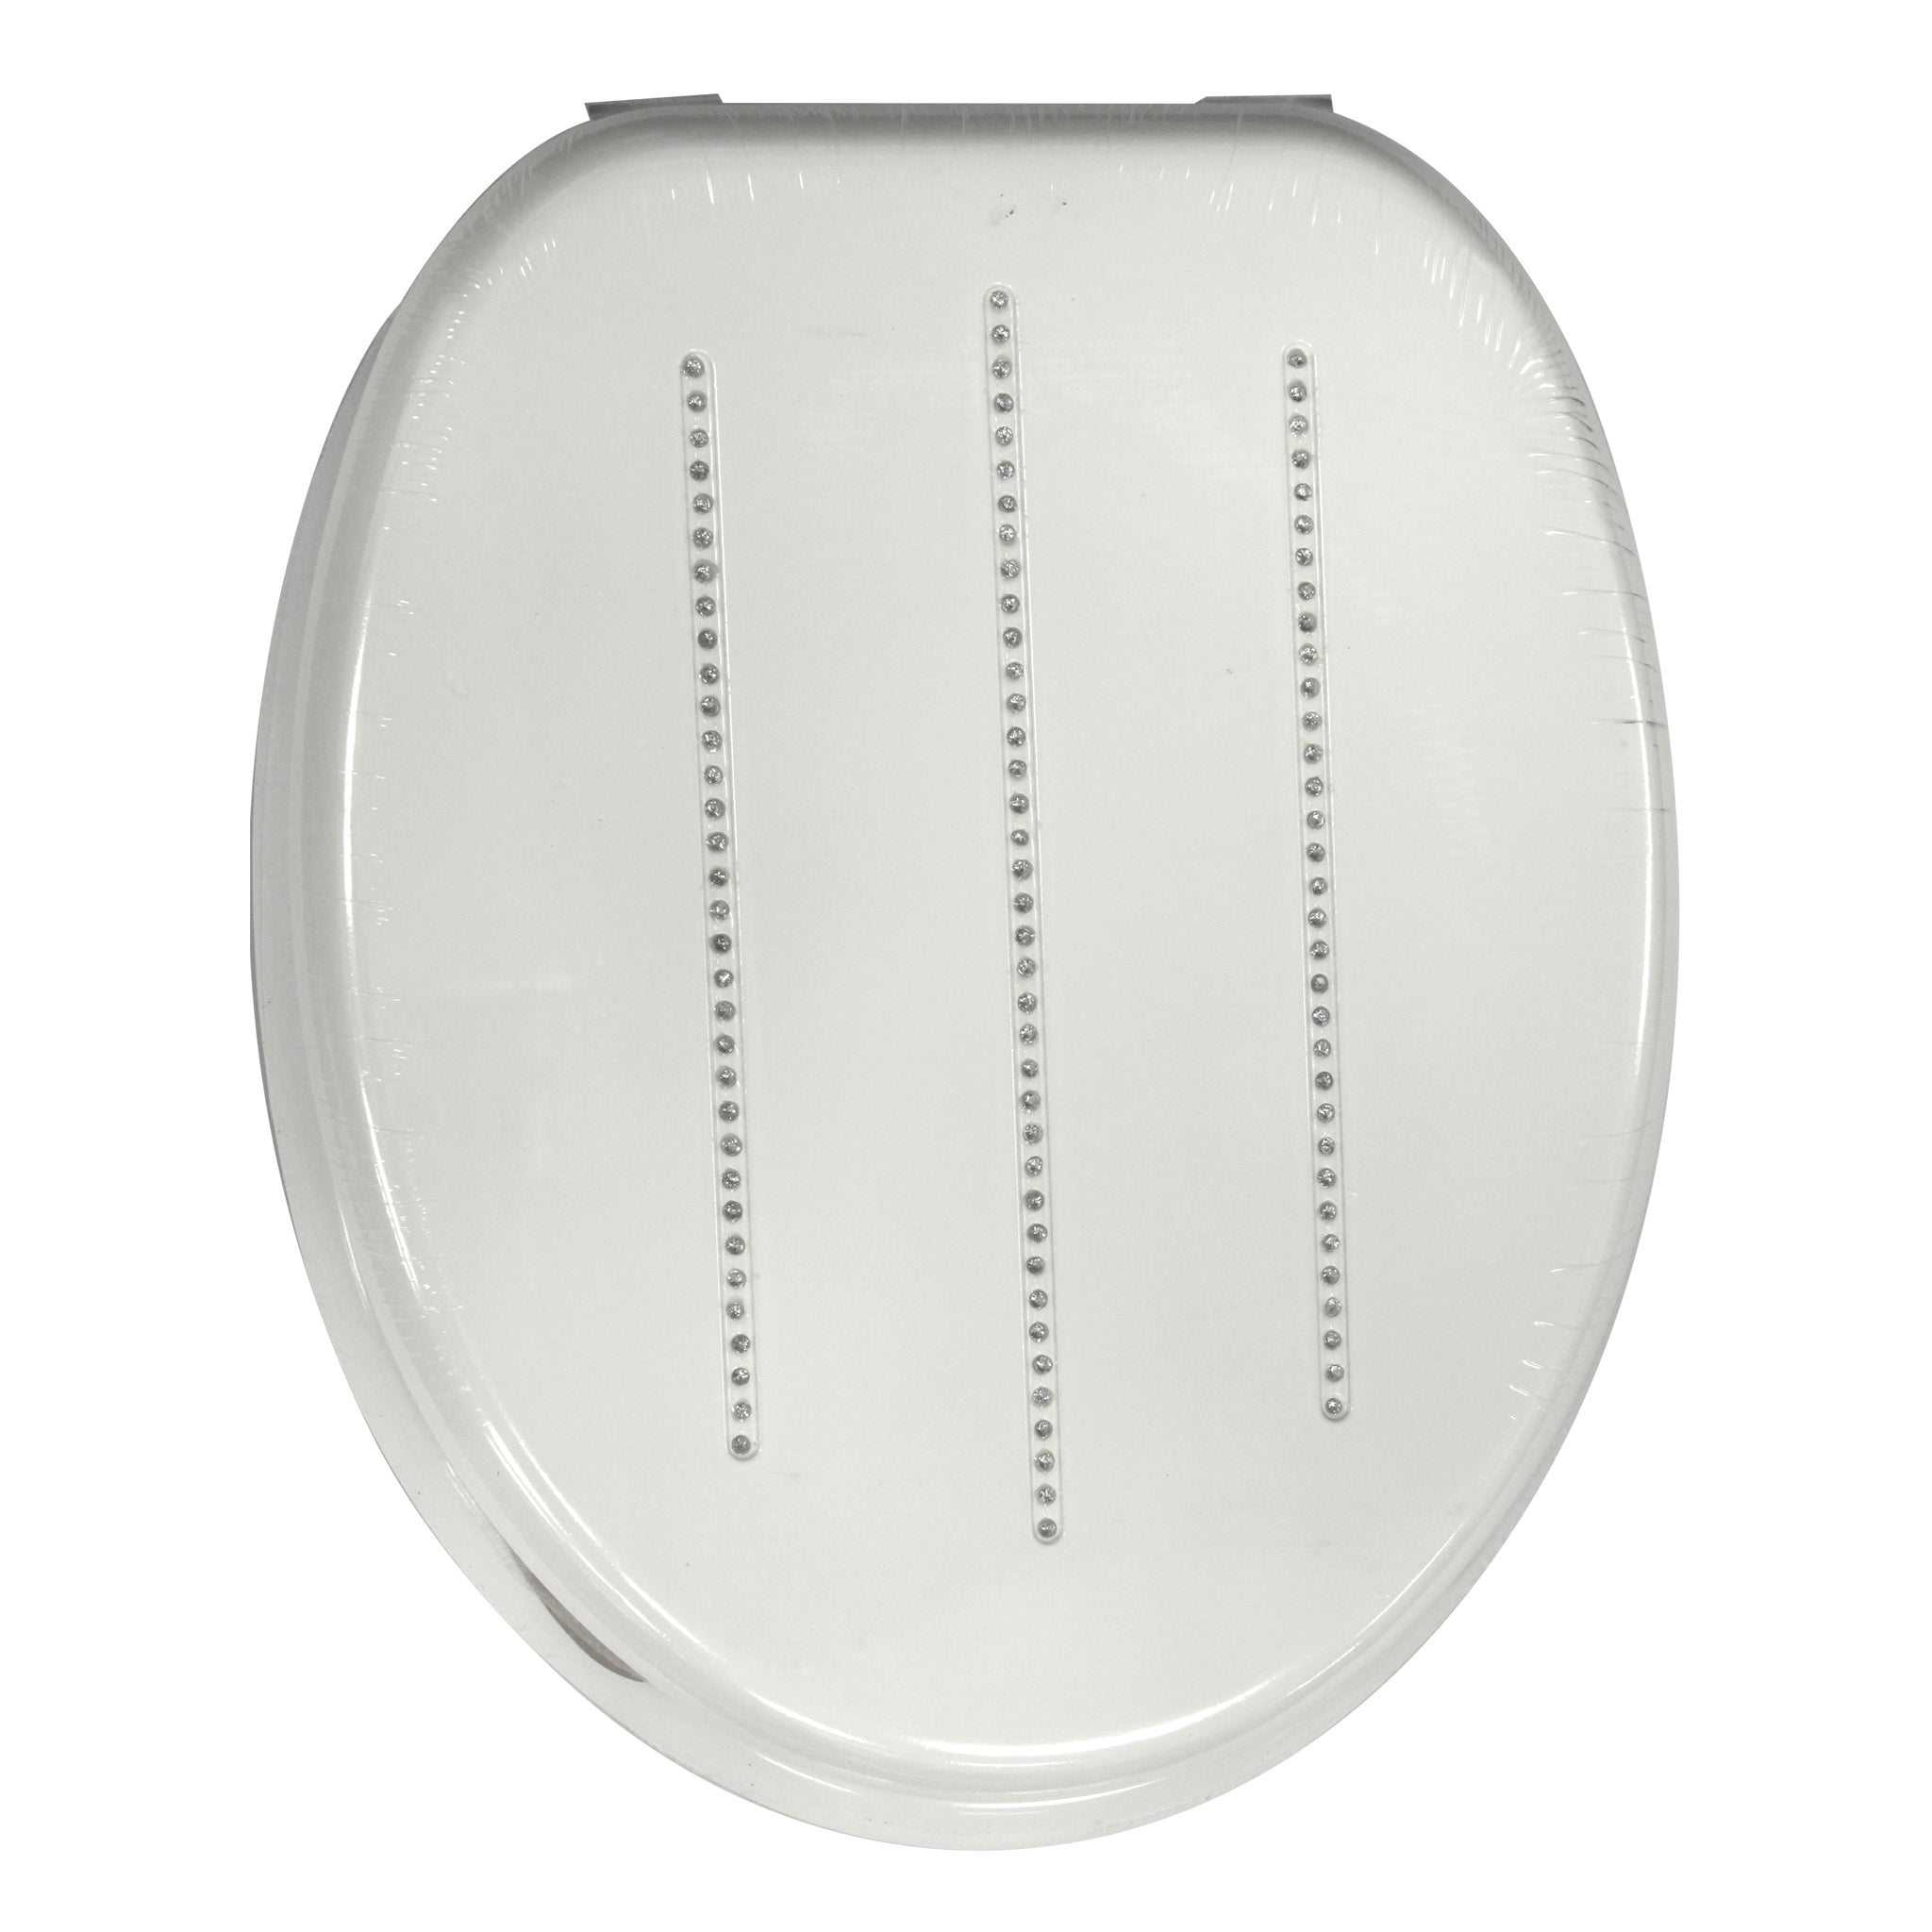 SQ PRO TOILET SEAT COVER